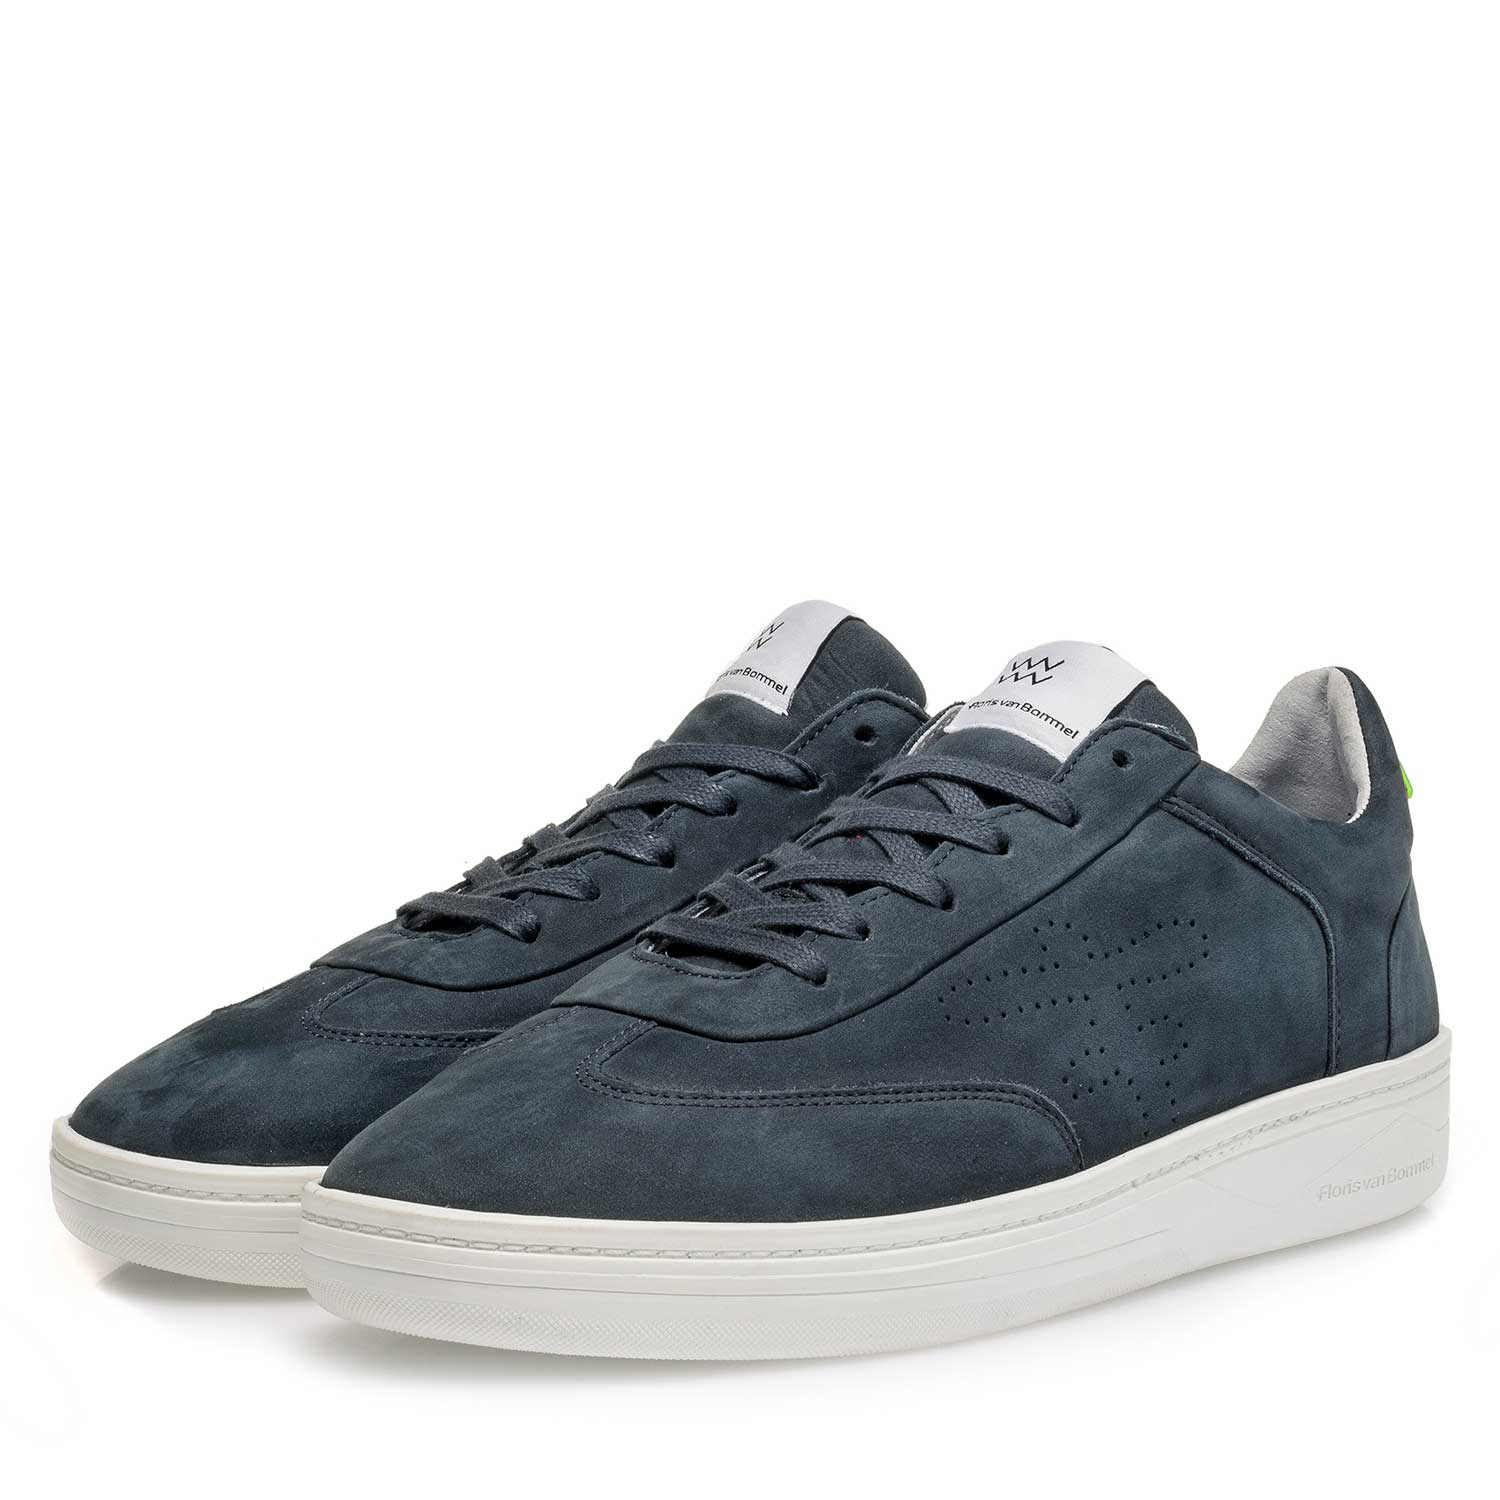 16255/01 - Blue nubuck leather sneaker